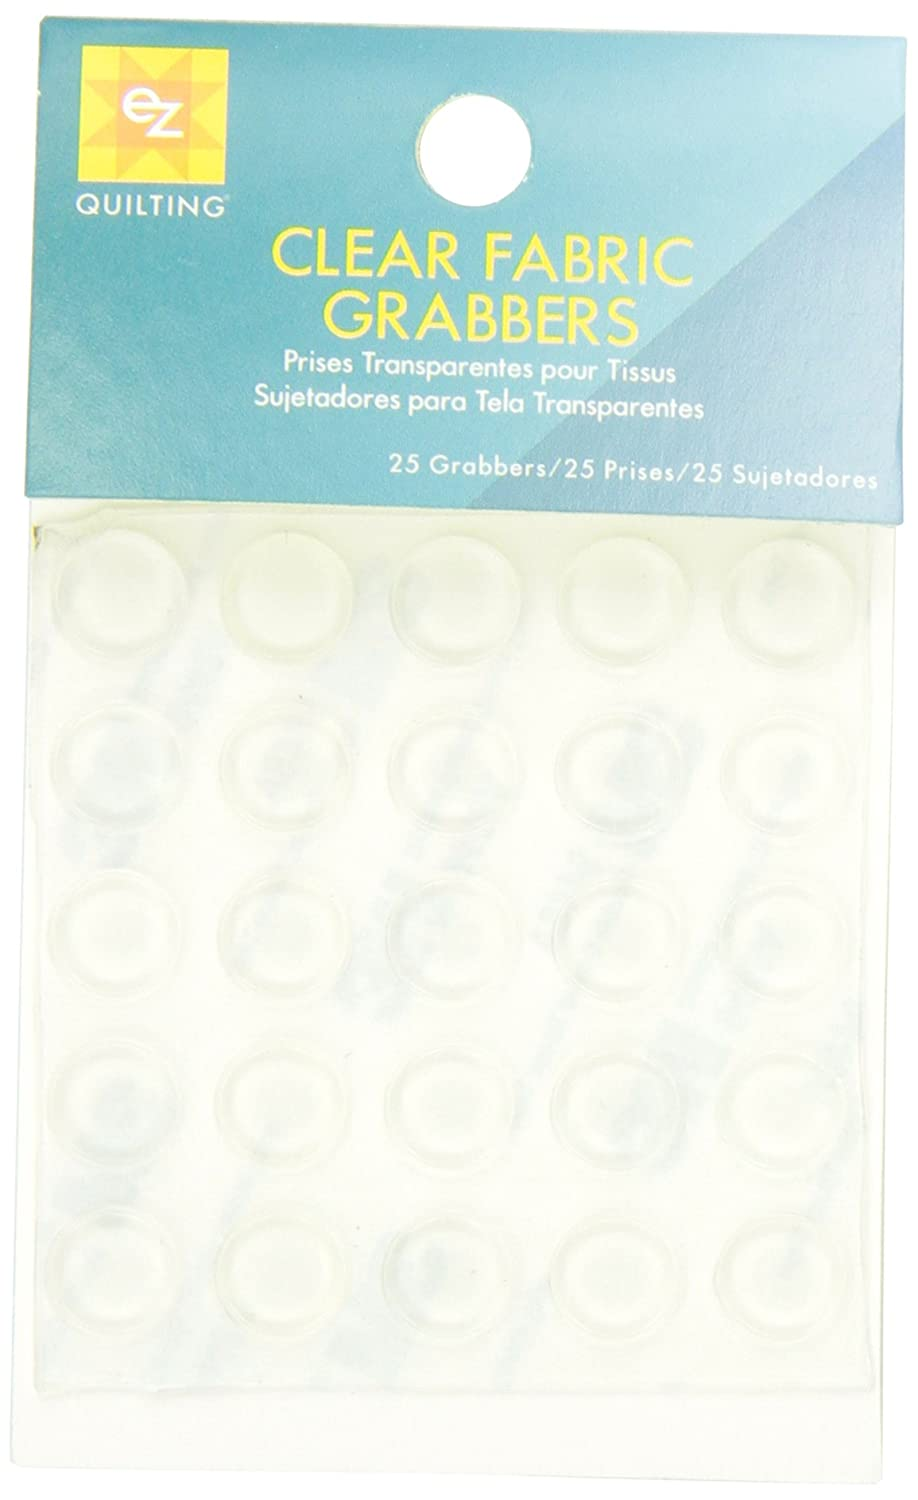 Wrights EZ Quilting 882113 Fabric Grabbers Clear Simplicity Creative Group Inc